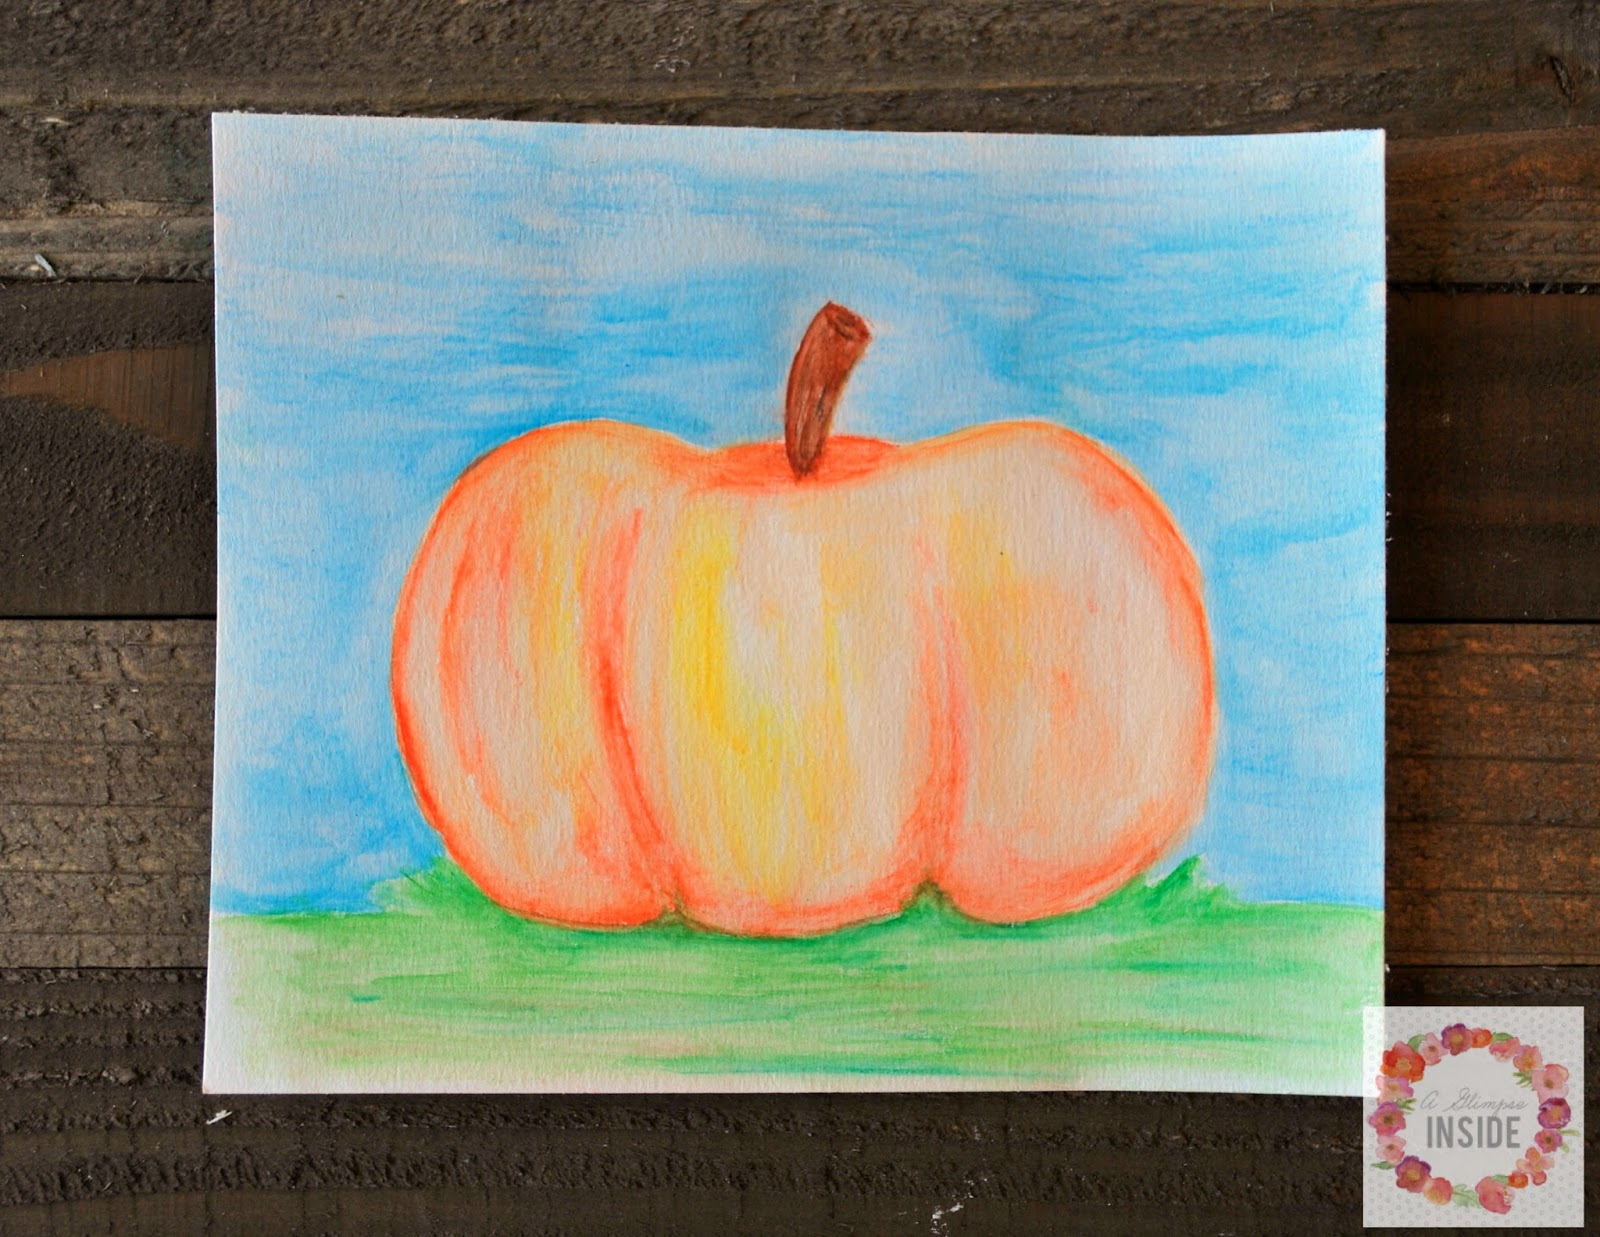 A Glimpse Inside: Craft with Me: Easy Watercolor Pencil Art